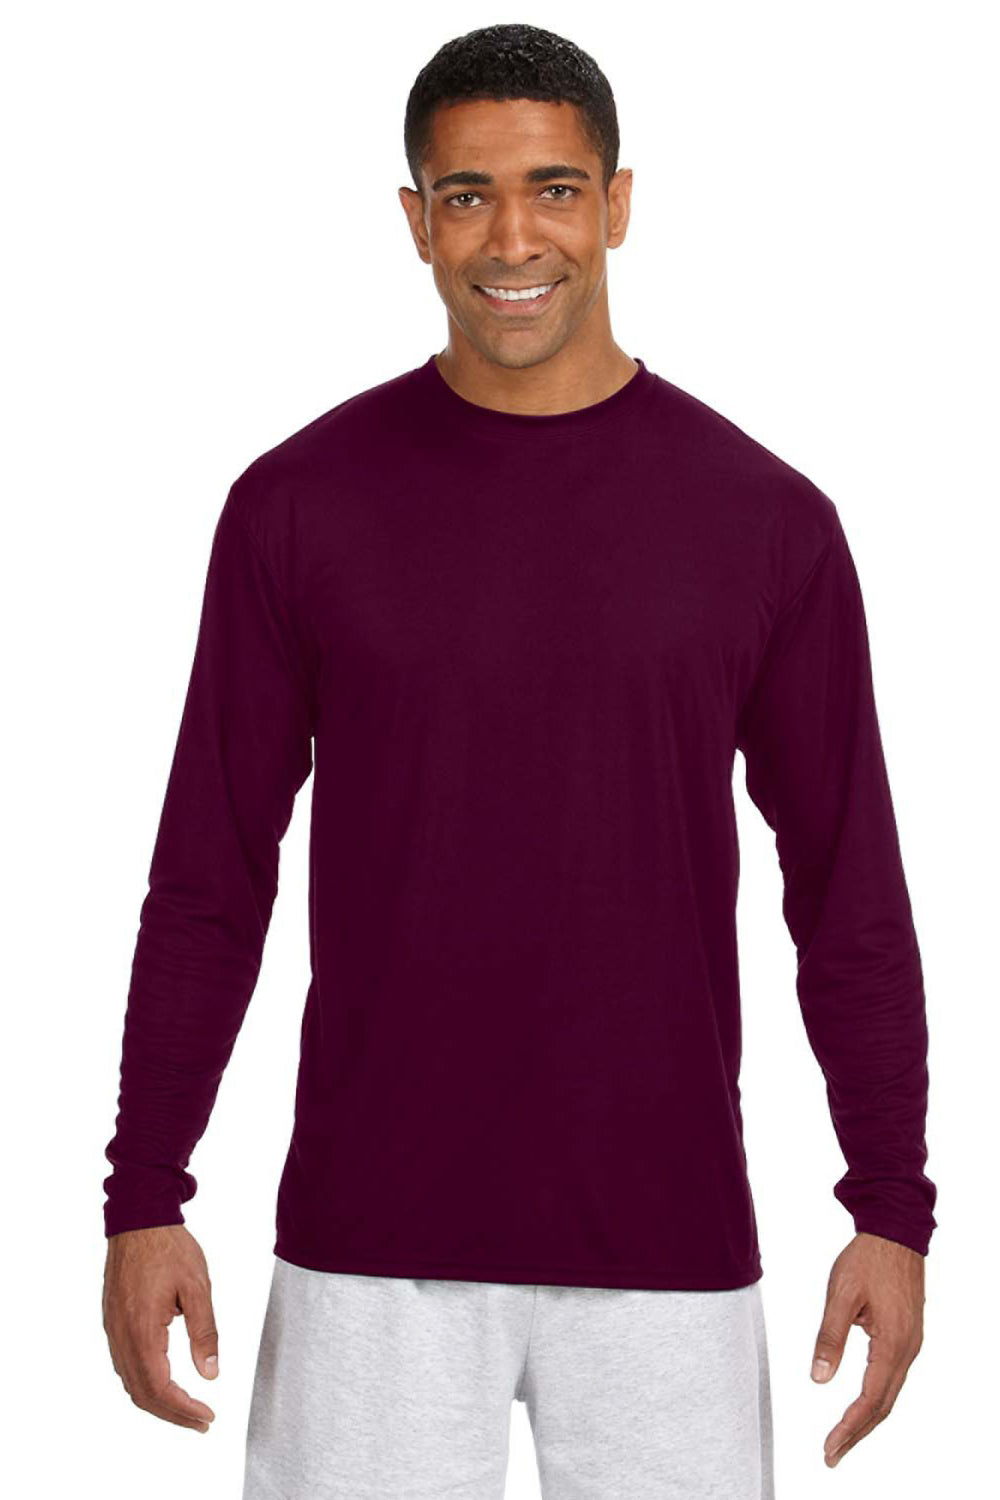 A4 N3165 Mens Cooling Performance Moisture Wicking Long Sleeve Crewneck T-Shirt Maroon Front